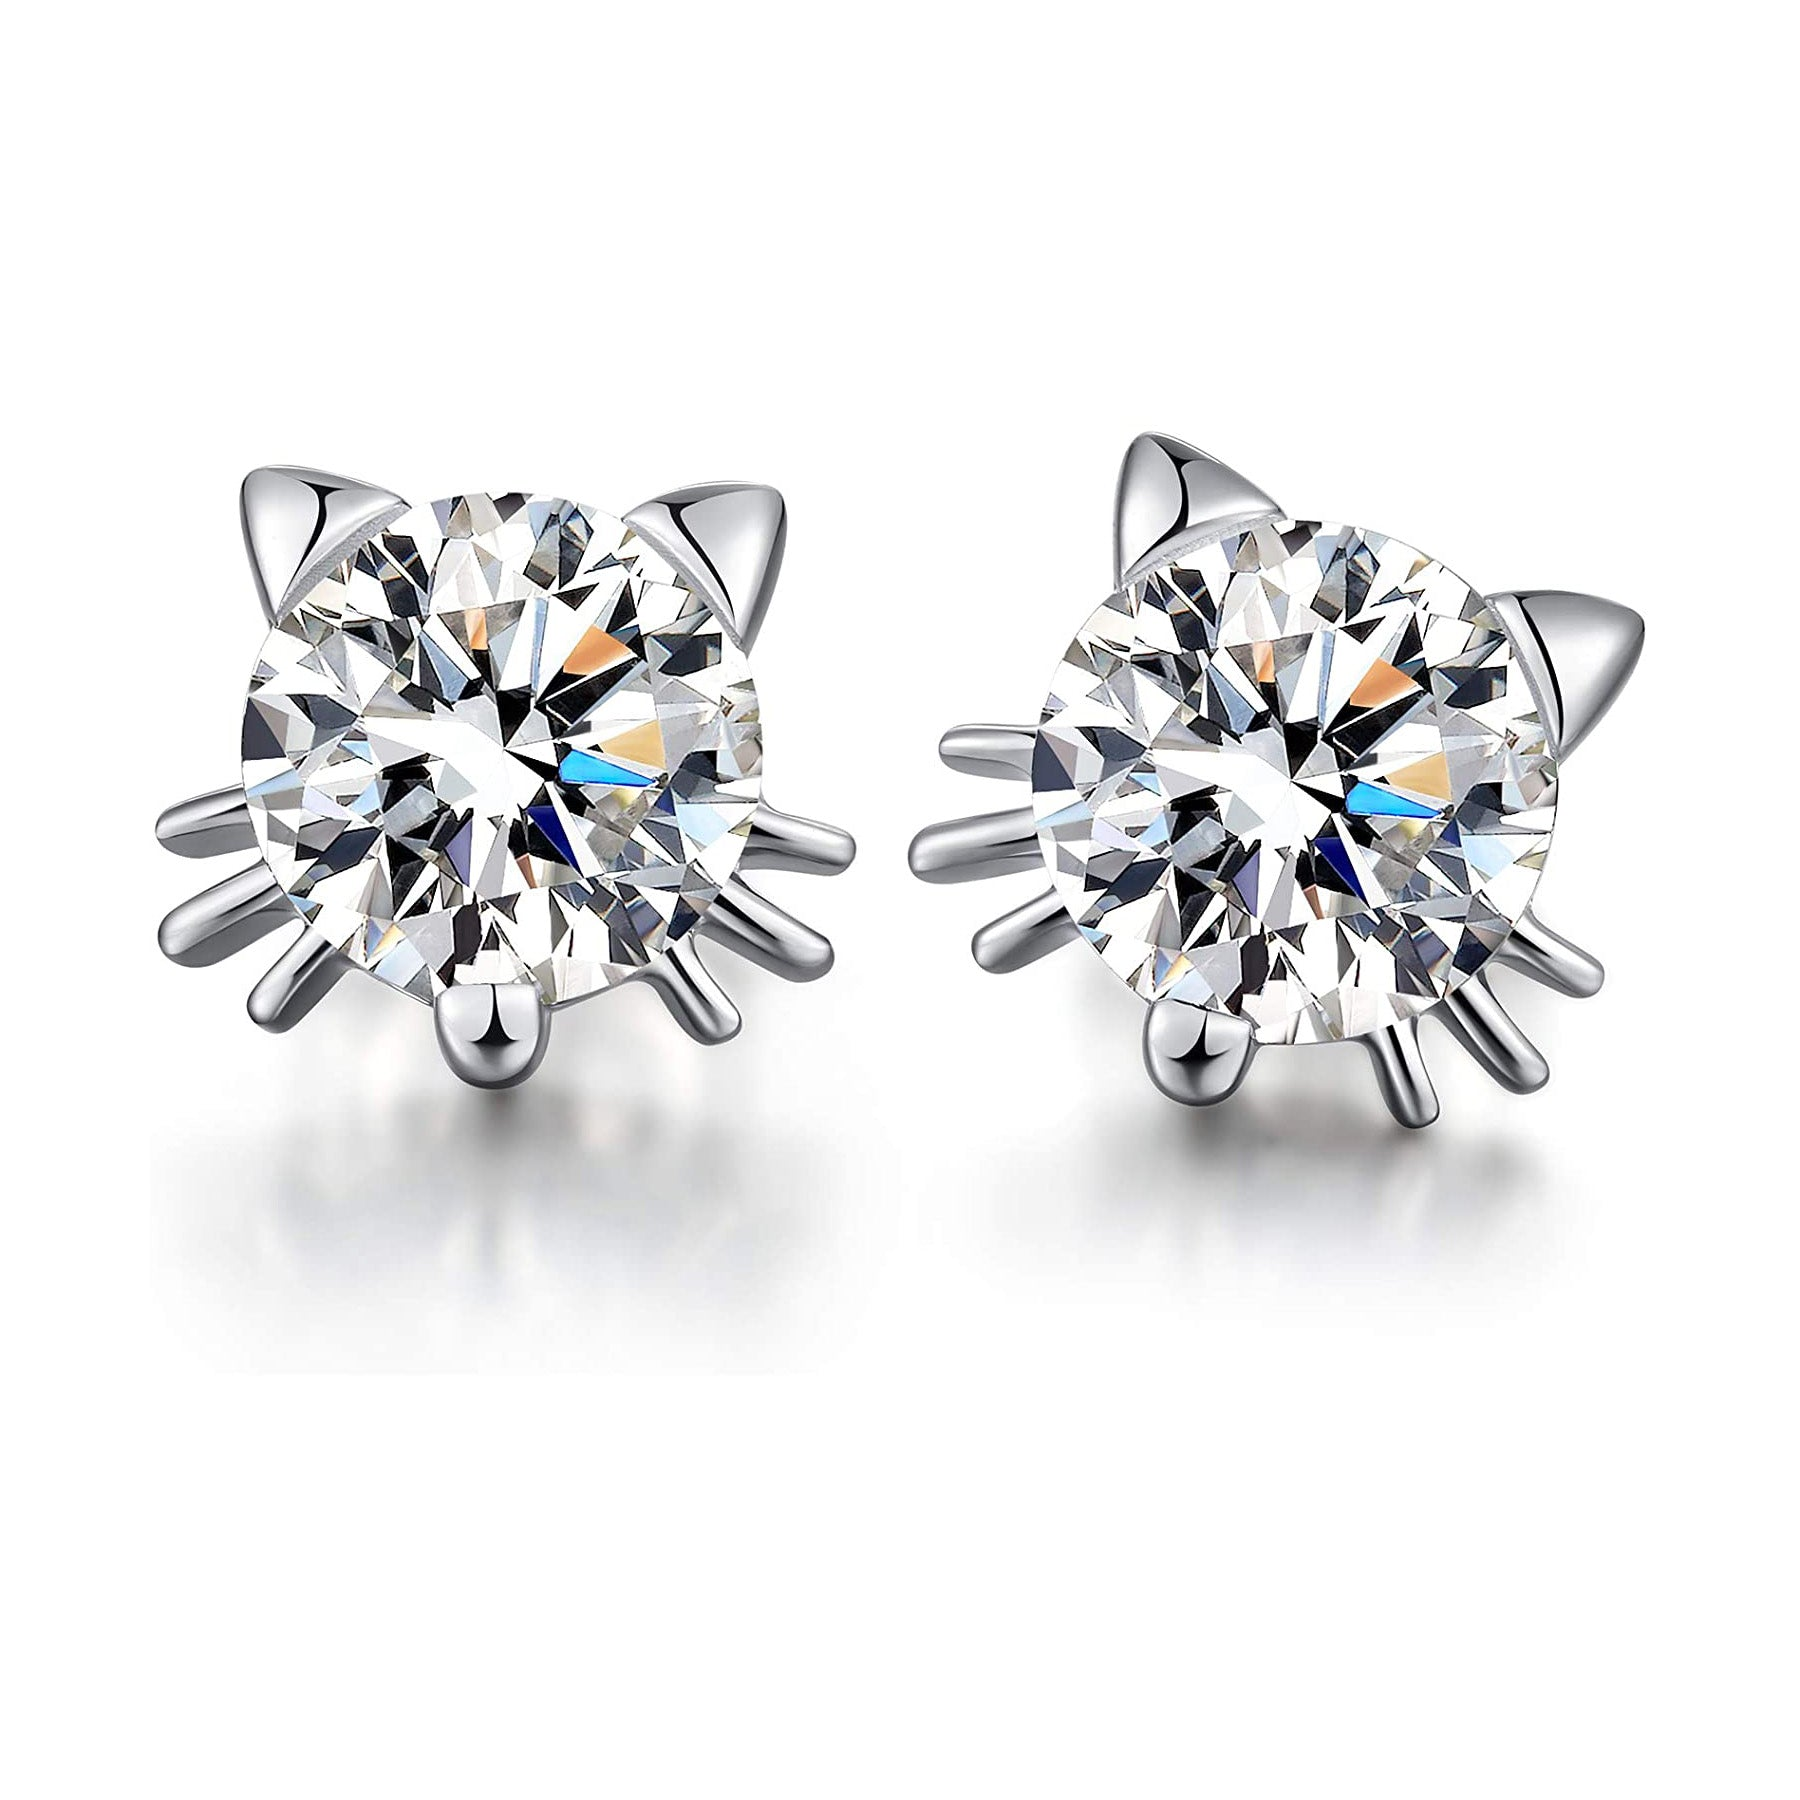 925 Sterling Silver Cute Cat Stud Earrings With 7mm Cubic Zirconia